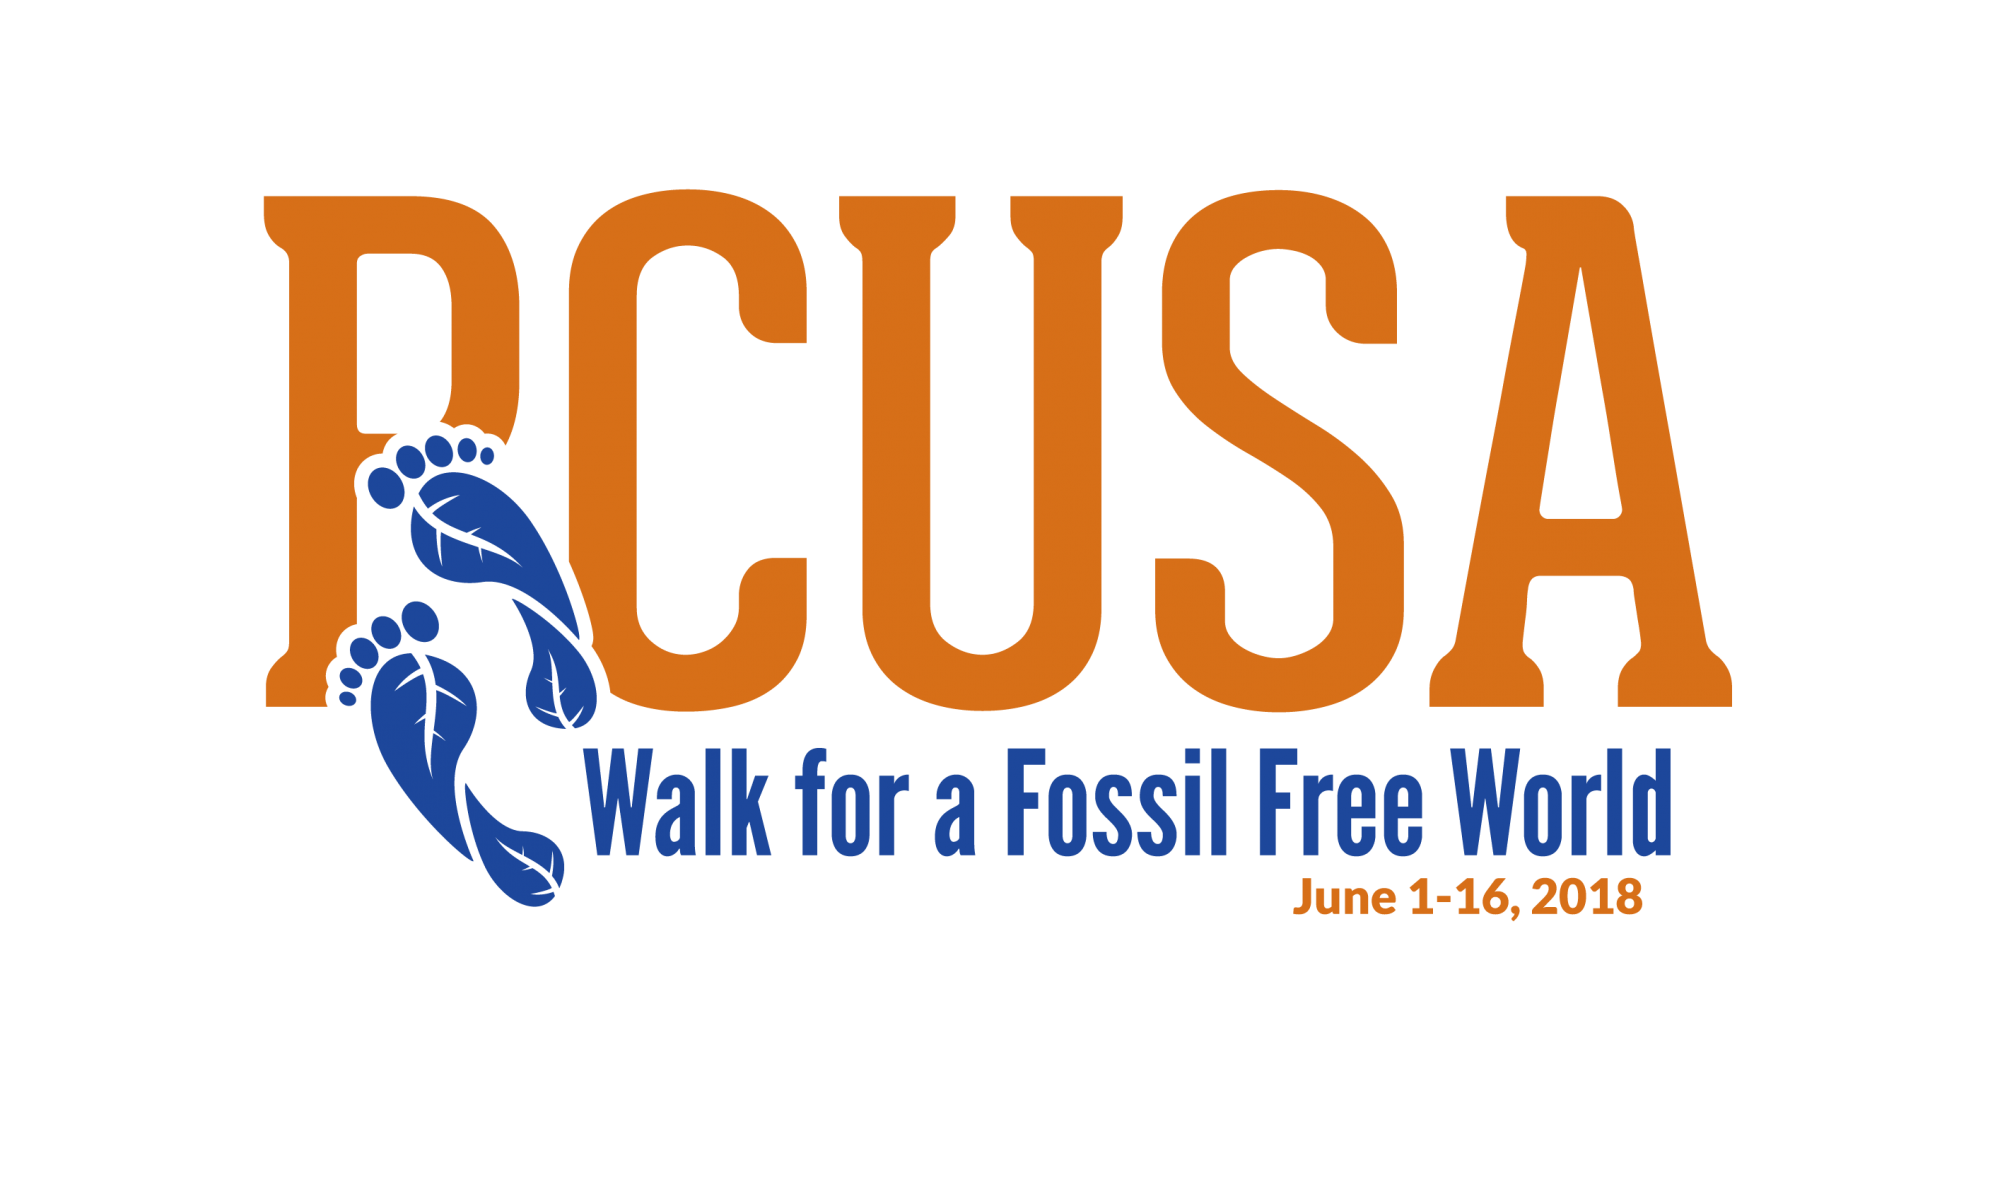 PCUSA Walk for a Fossil Free World